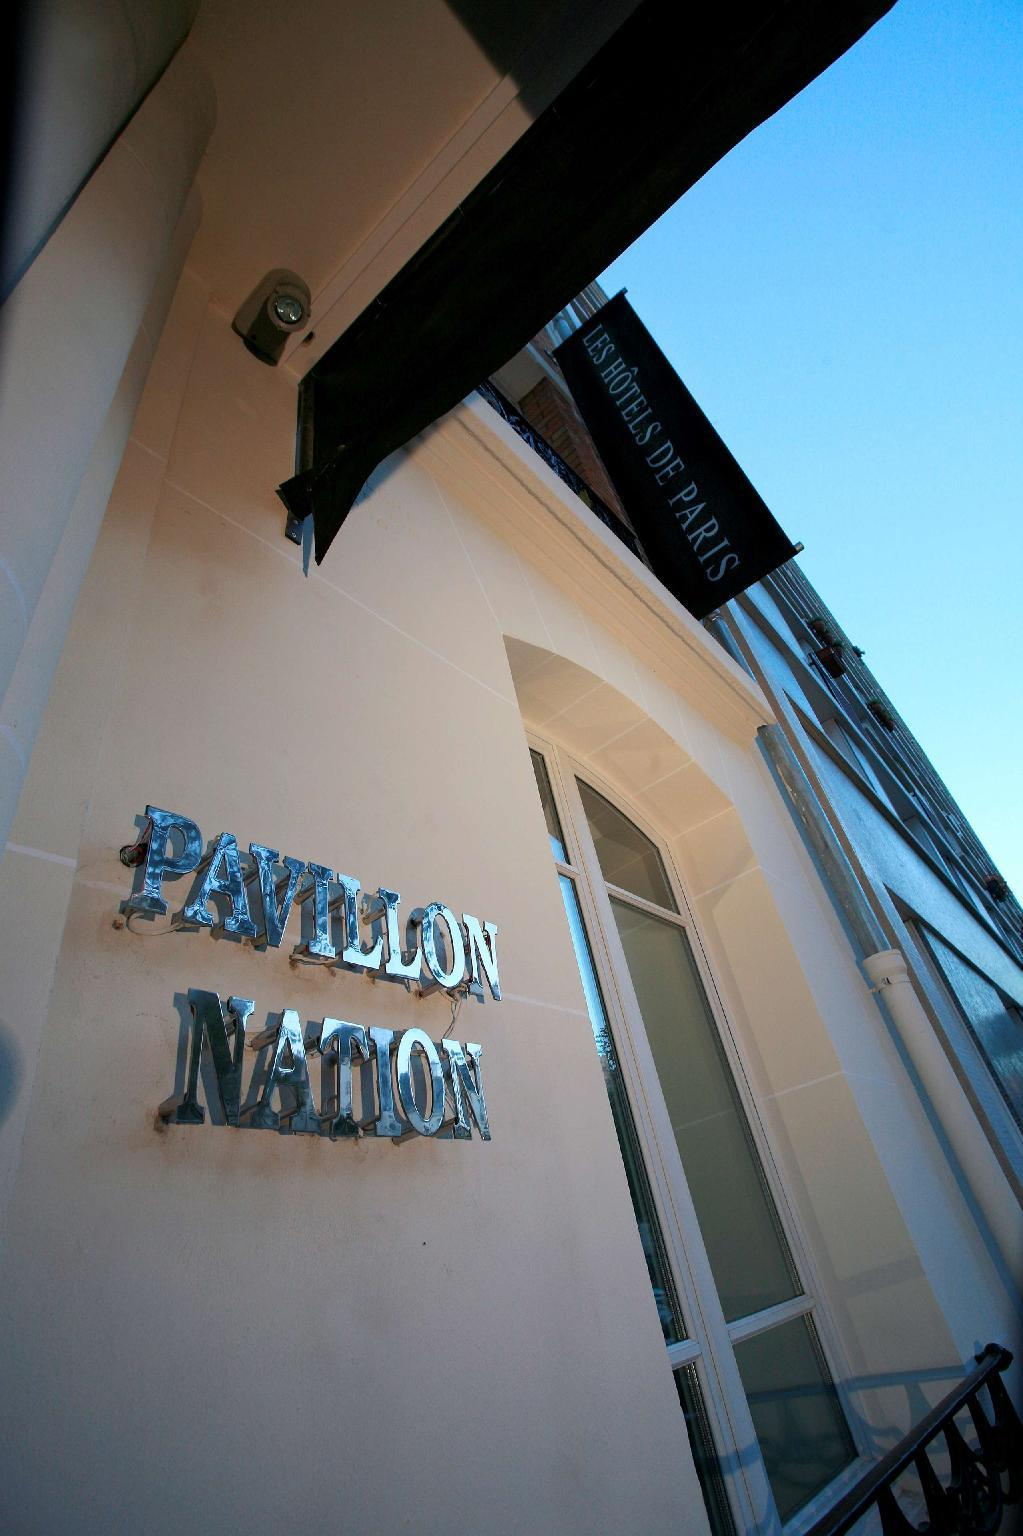 Pavillon Nation